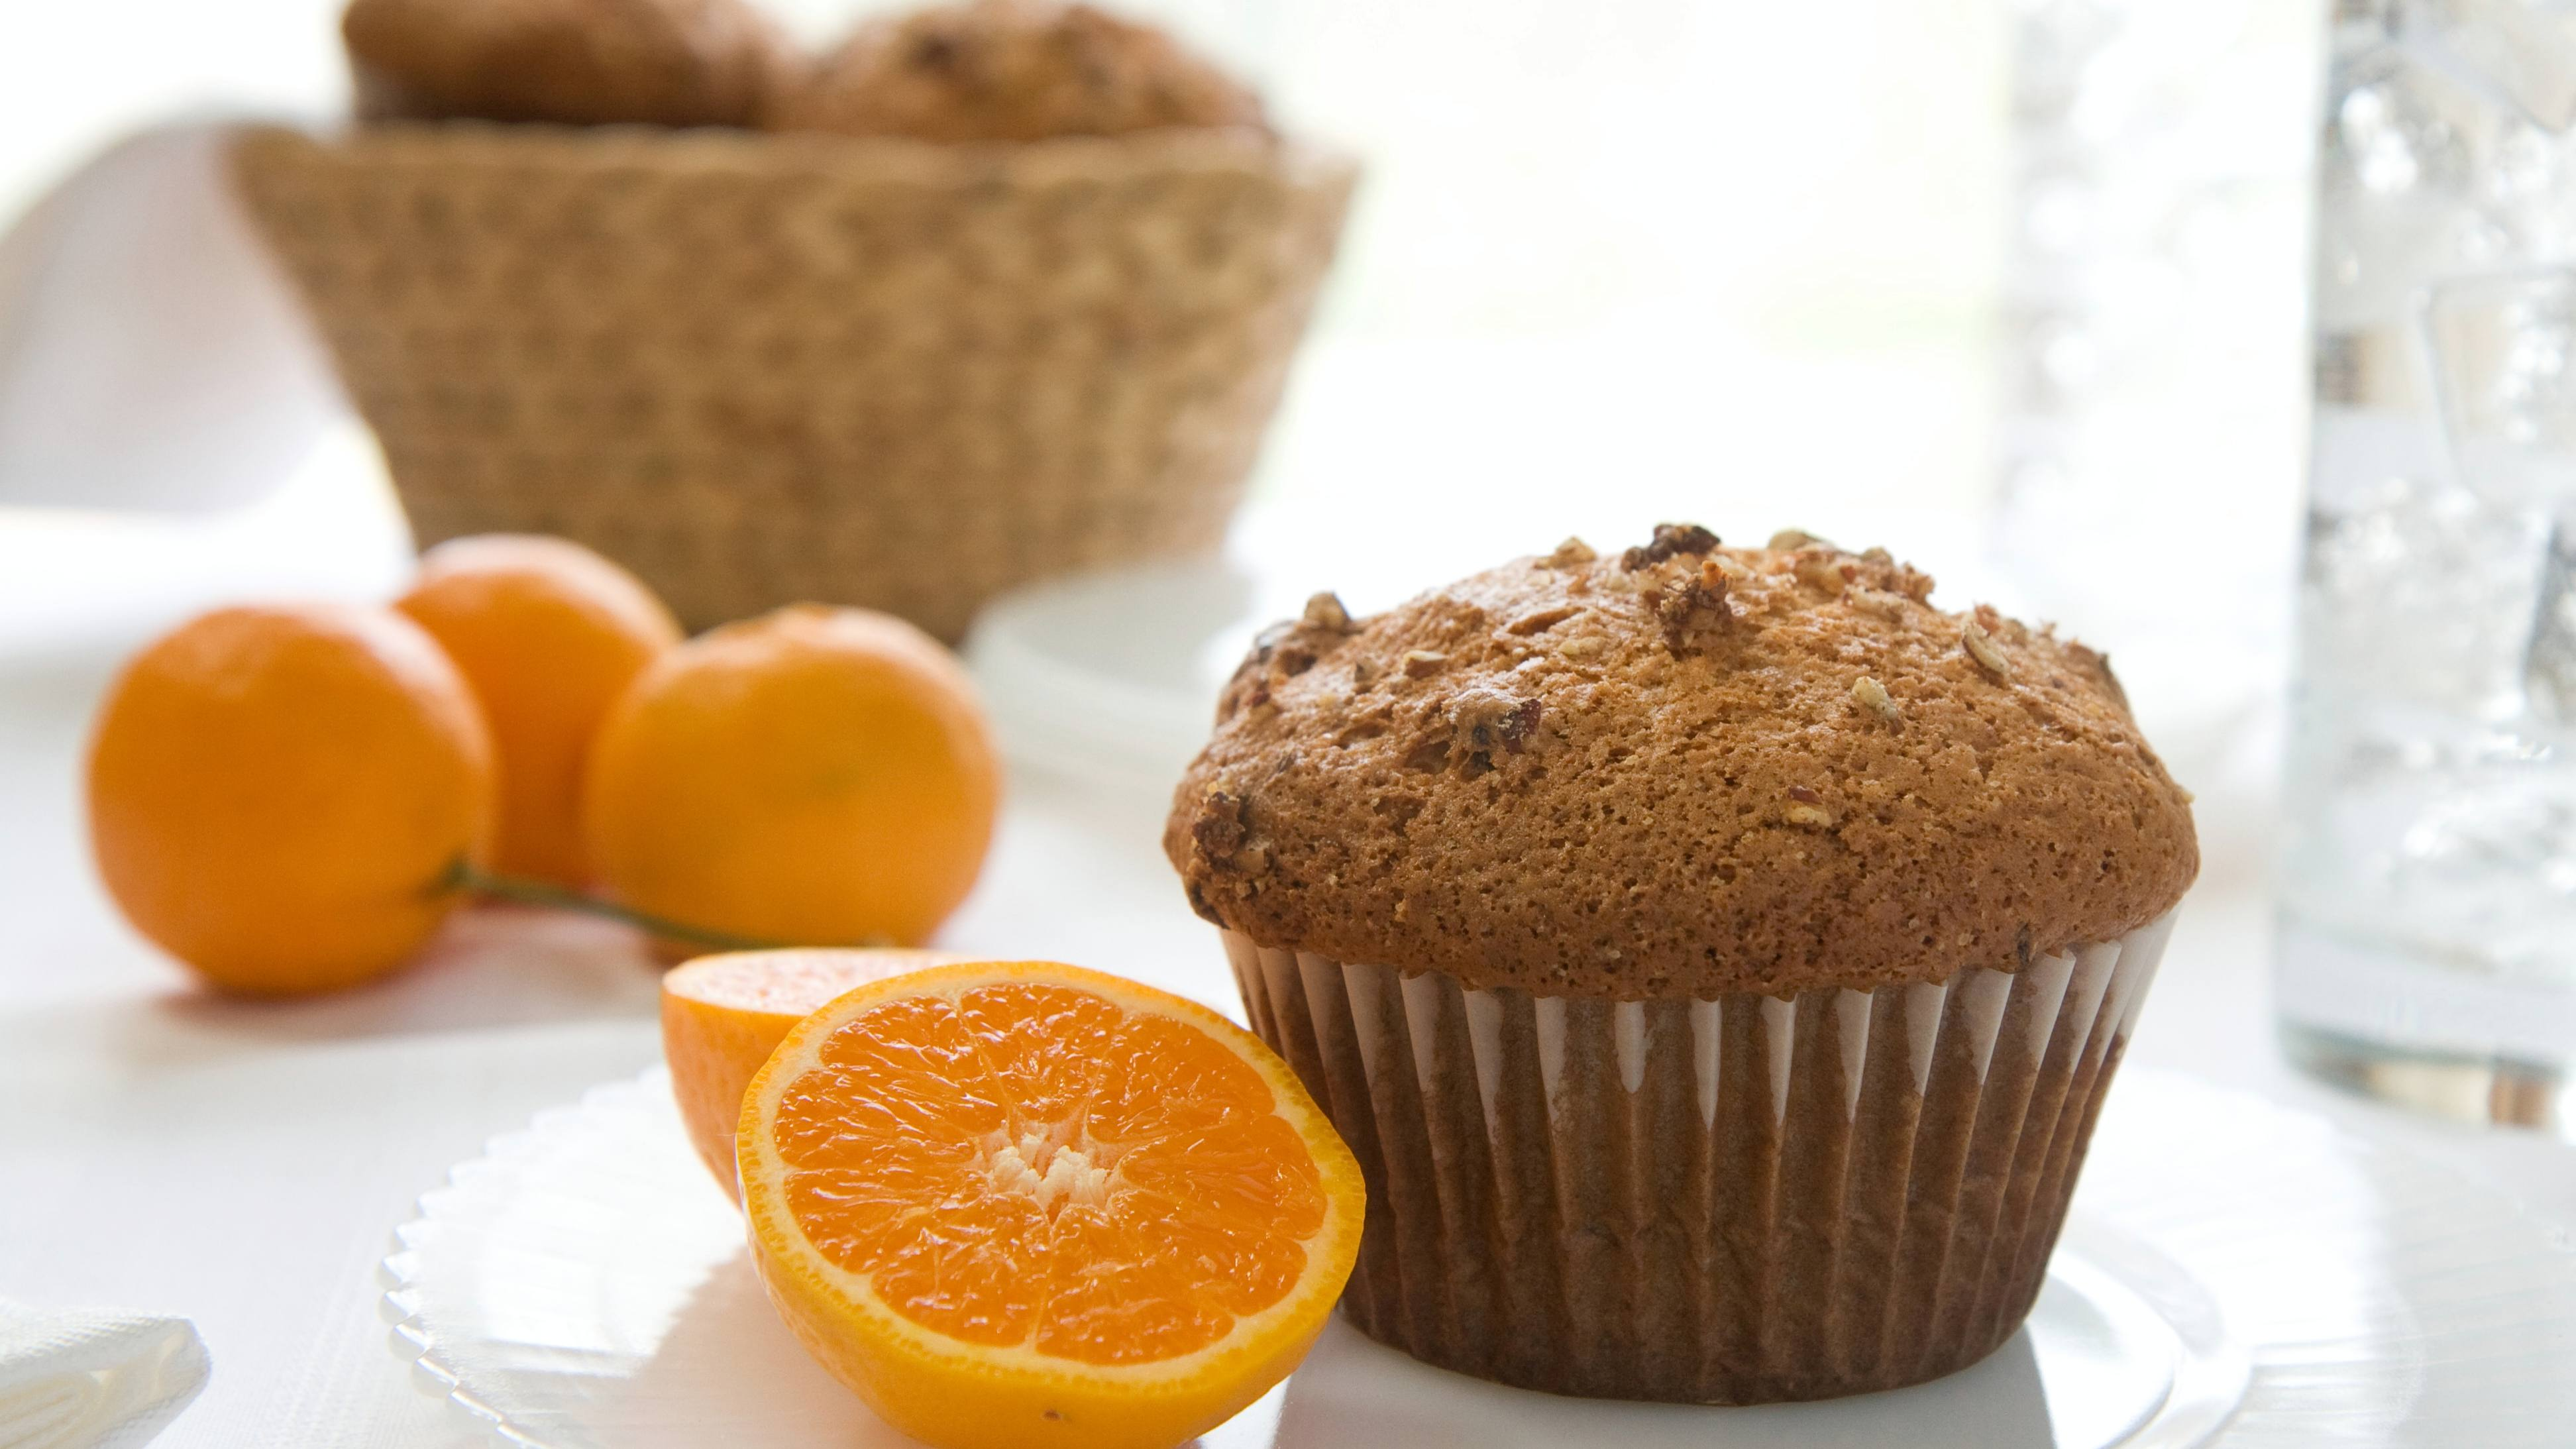 cranberry orange muffins on a plate